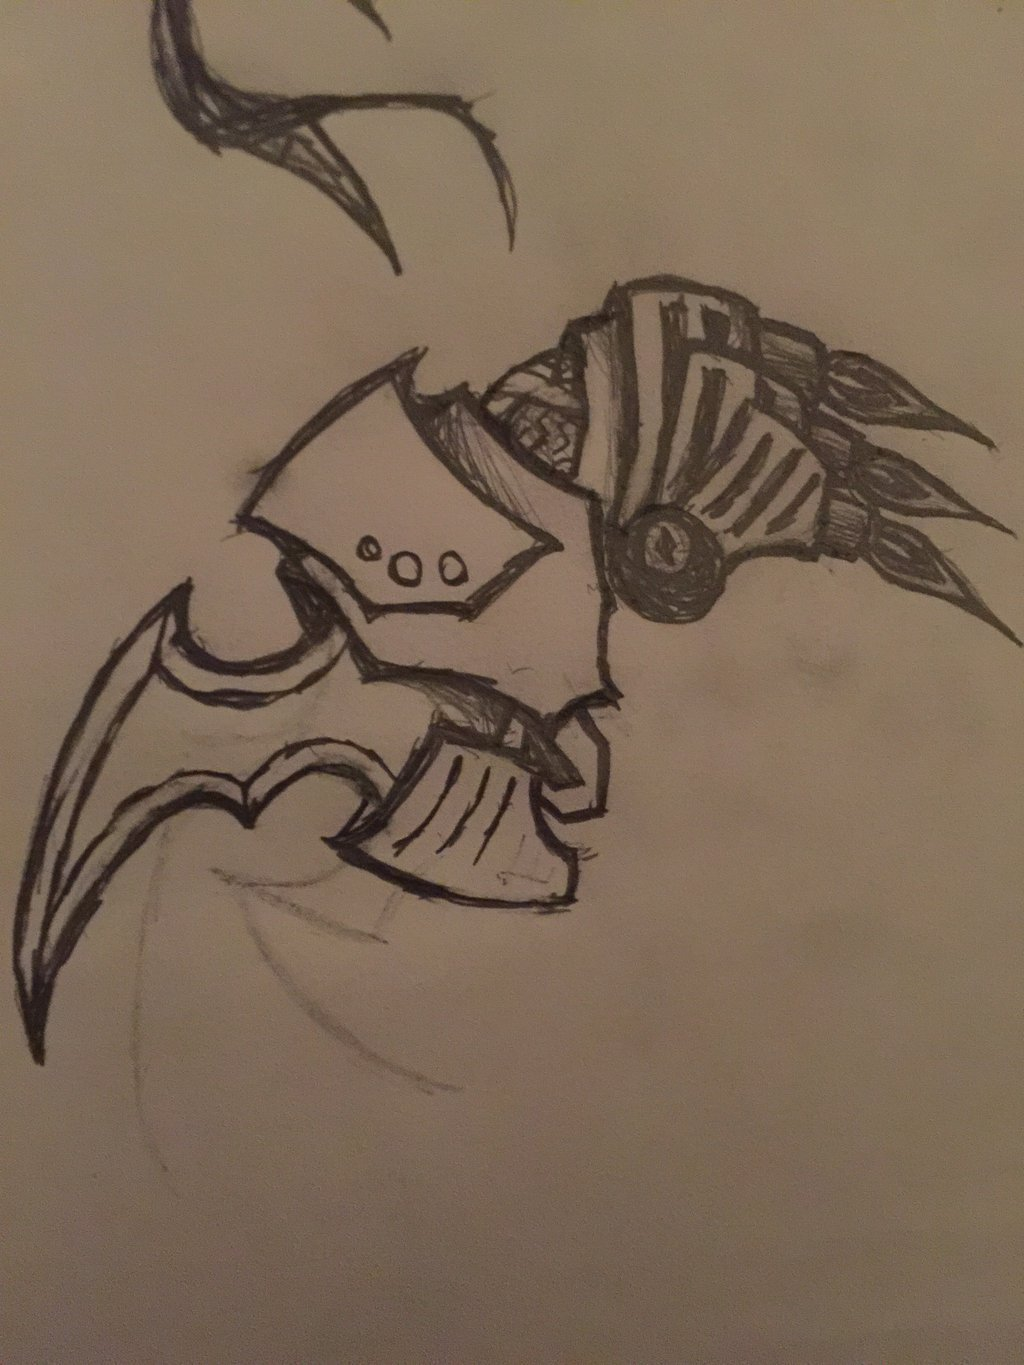 Drawn scythe mechanical By doodle Pencilist by on